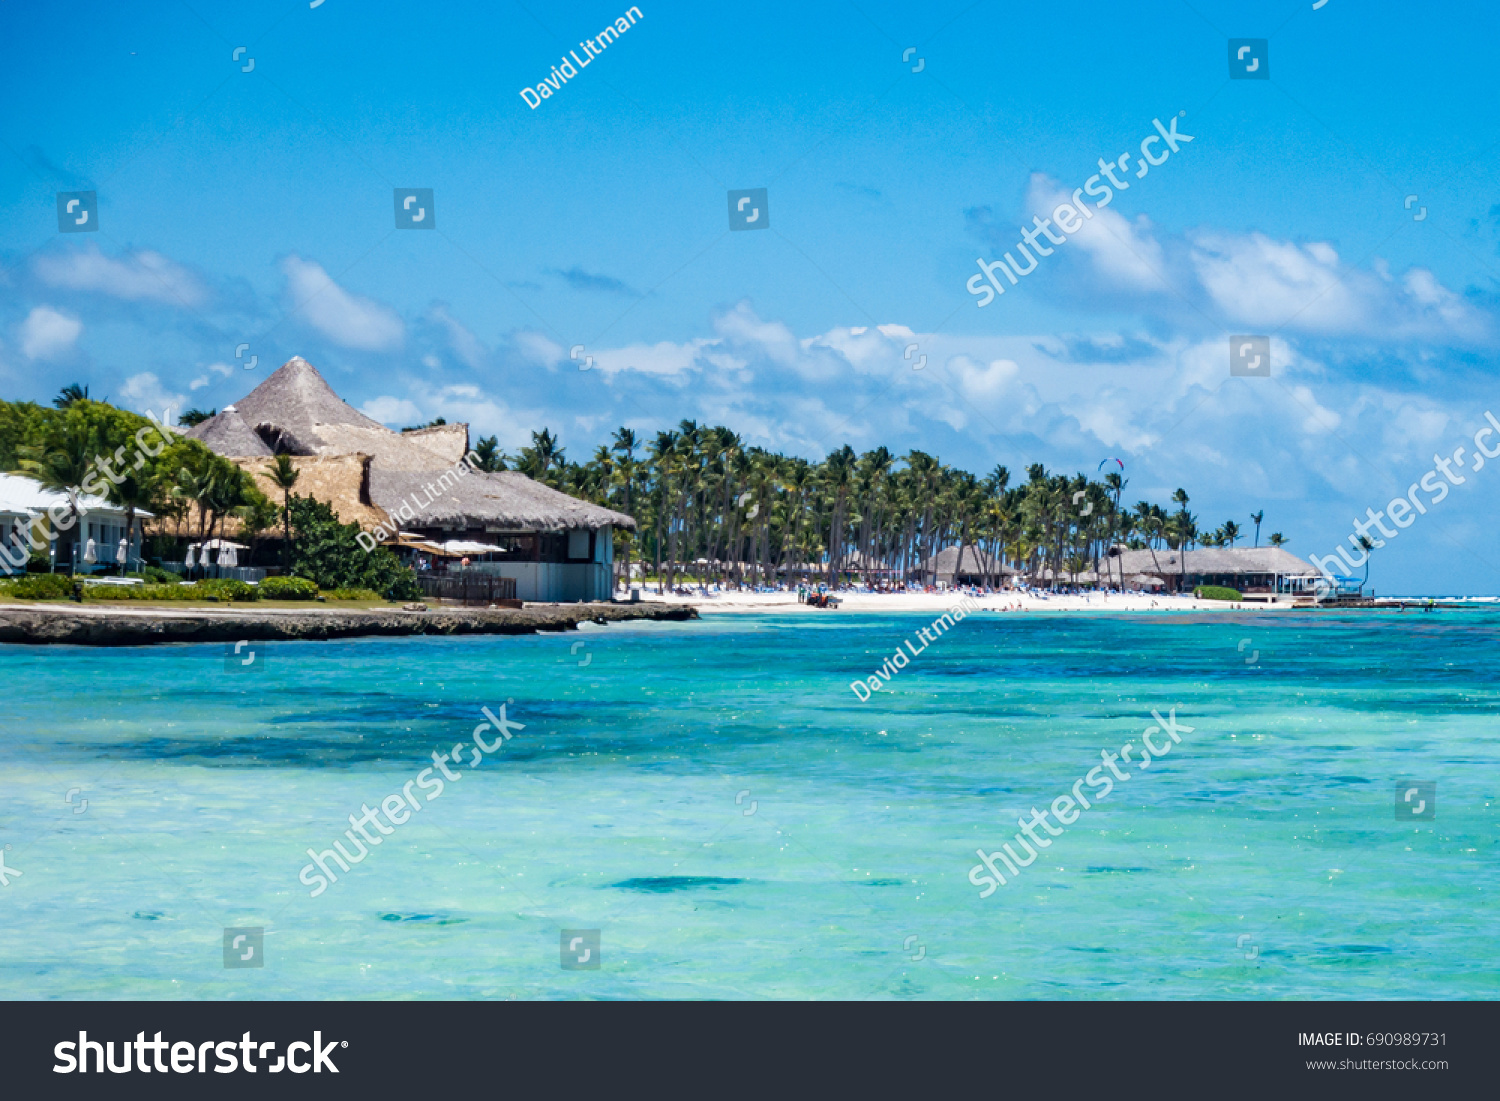 The crystal clear aqua blue Caribbean sea along the beach in Punta Cana, Dominican Republic with palm trees on a partly cloudy summer day in tropical paradise. Club Med all inclusive resort.